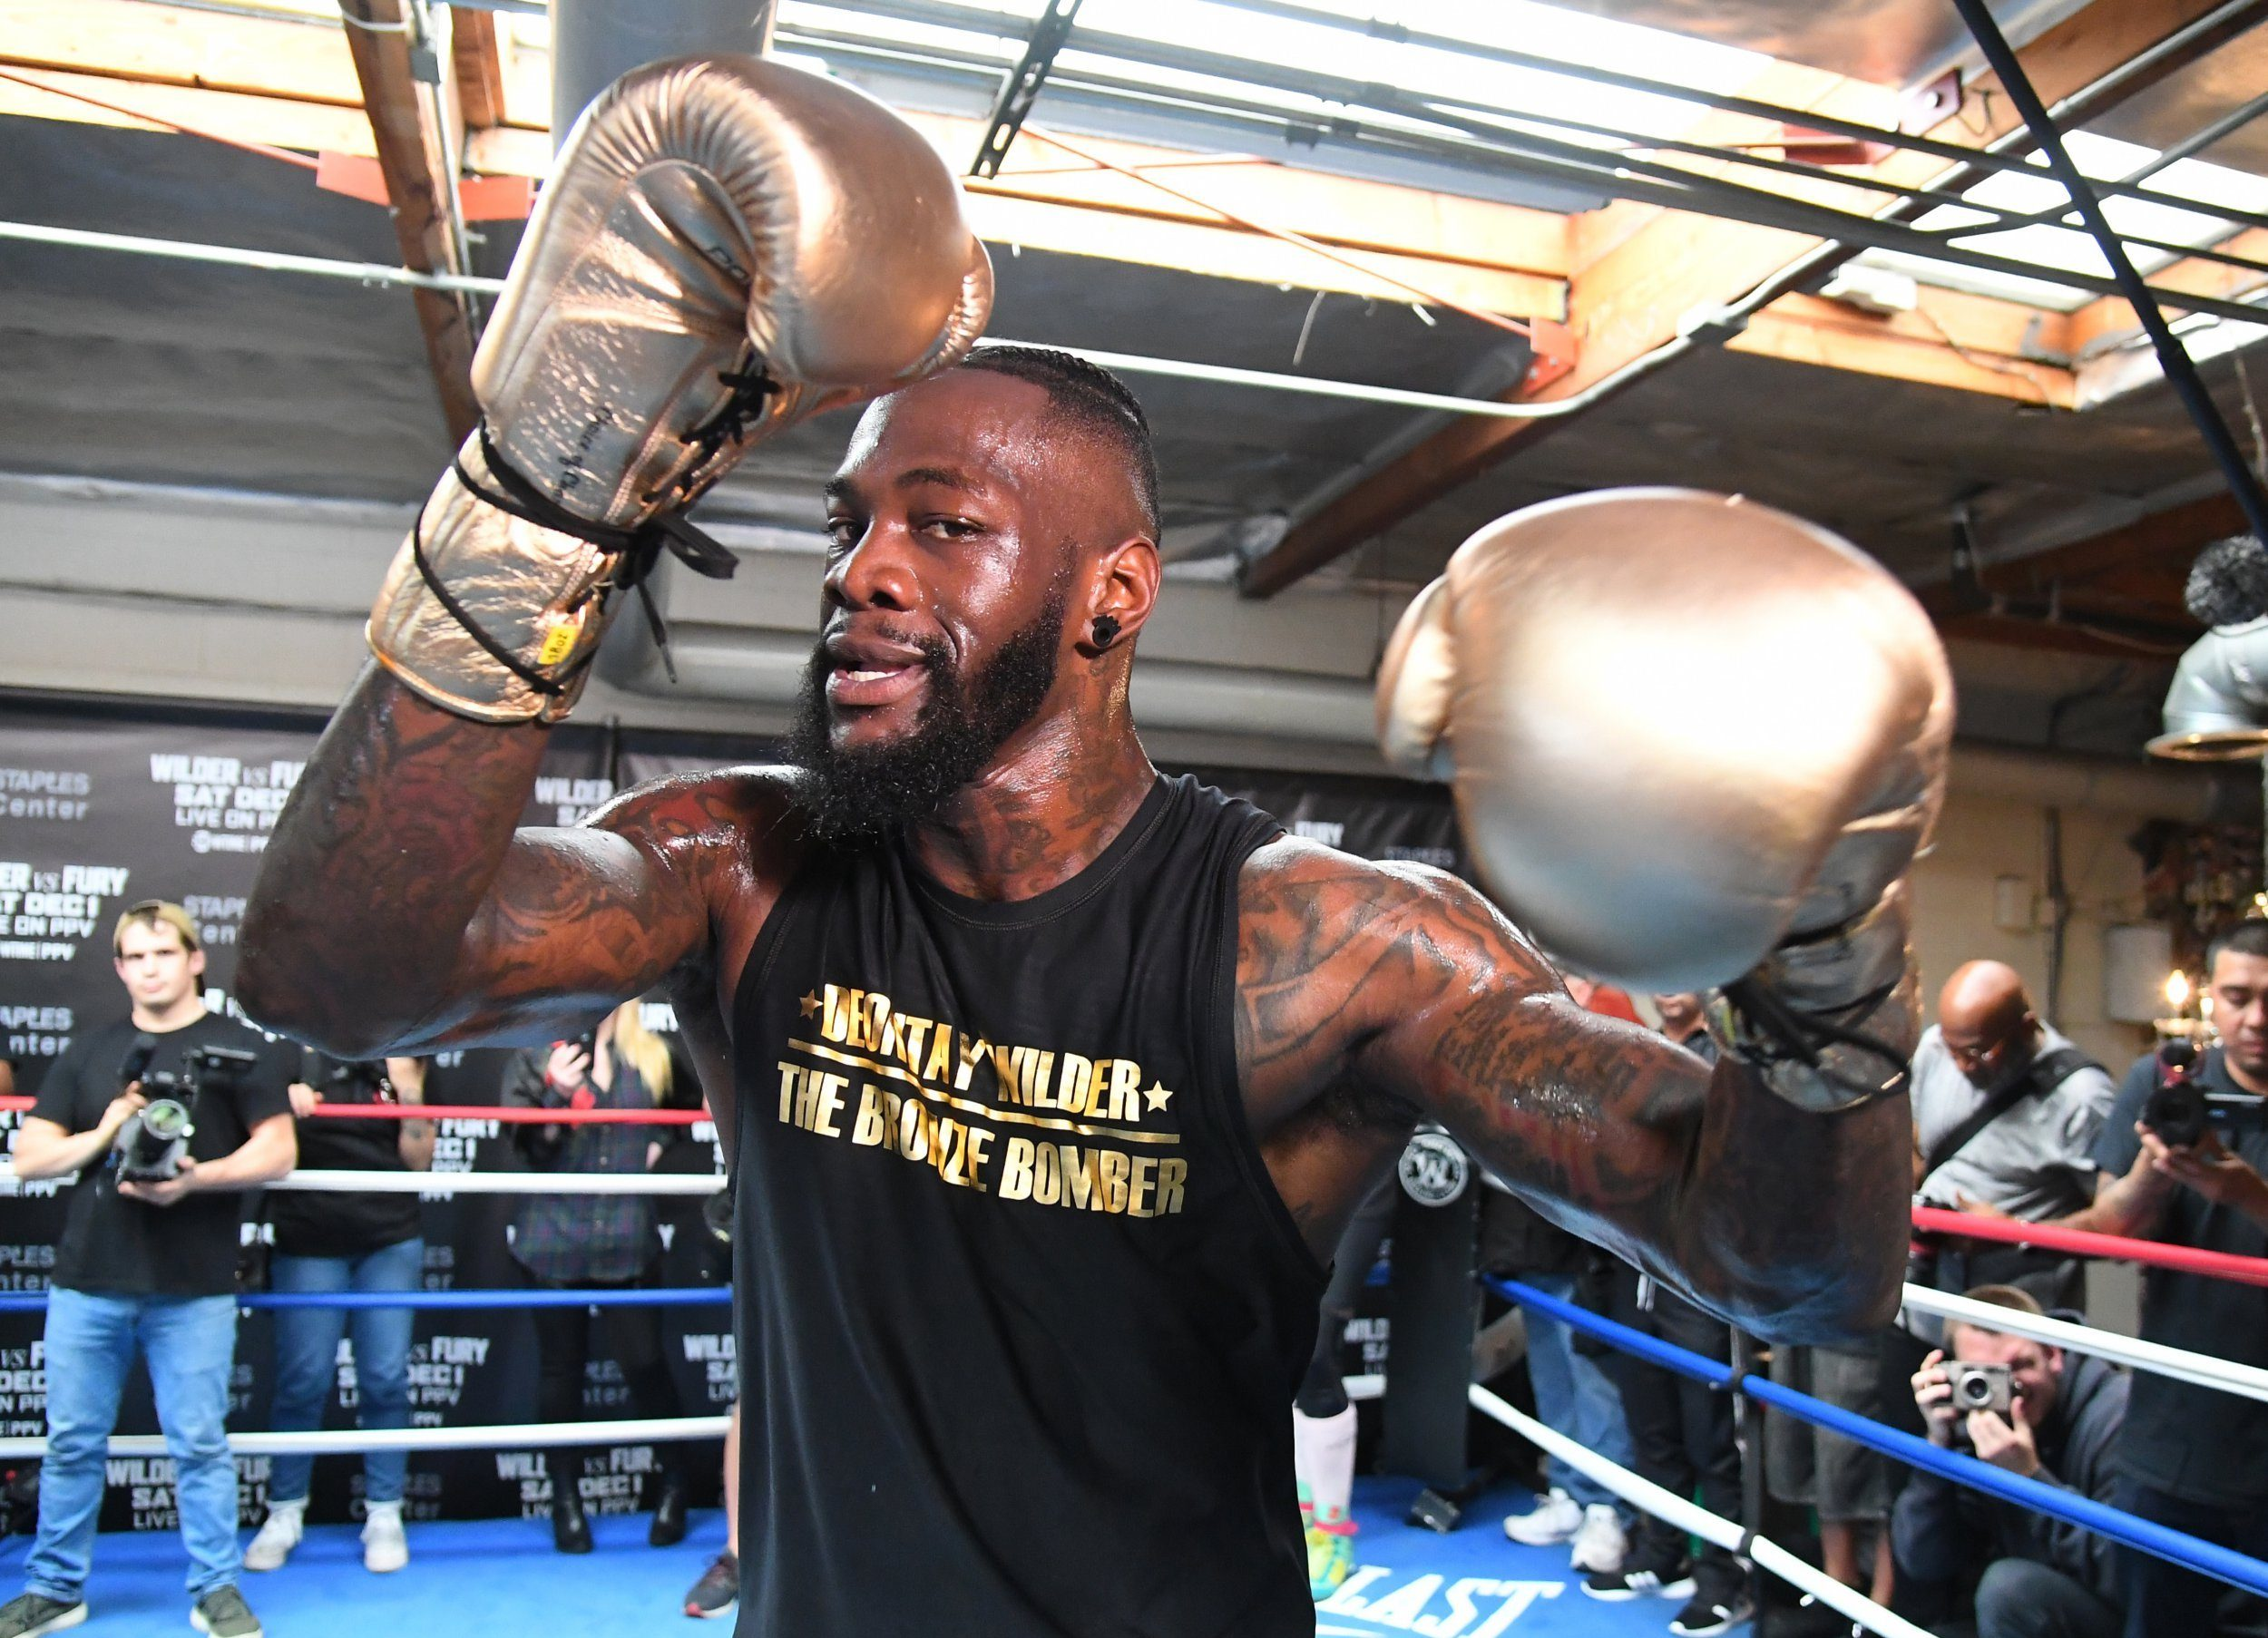 SANTA MONICA, CALIFORNIA - NOVEMBER 05: WBC Heavyweight Champion Deontay Wilder works out for the media at Churchill Boxing Club on November 05, 2018 in Santa Monica, California. (Photo by Jayne Kamin-Oncea/Getty Images)